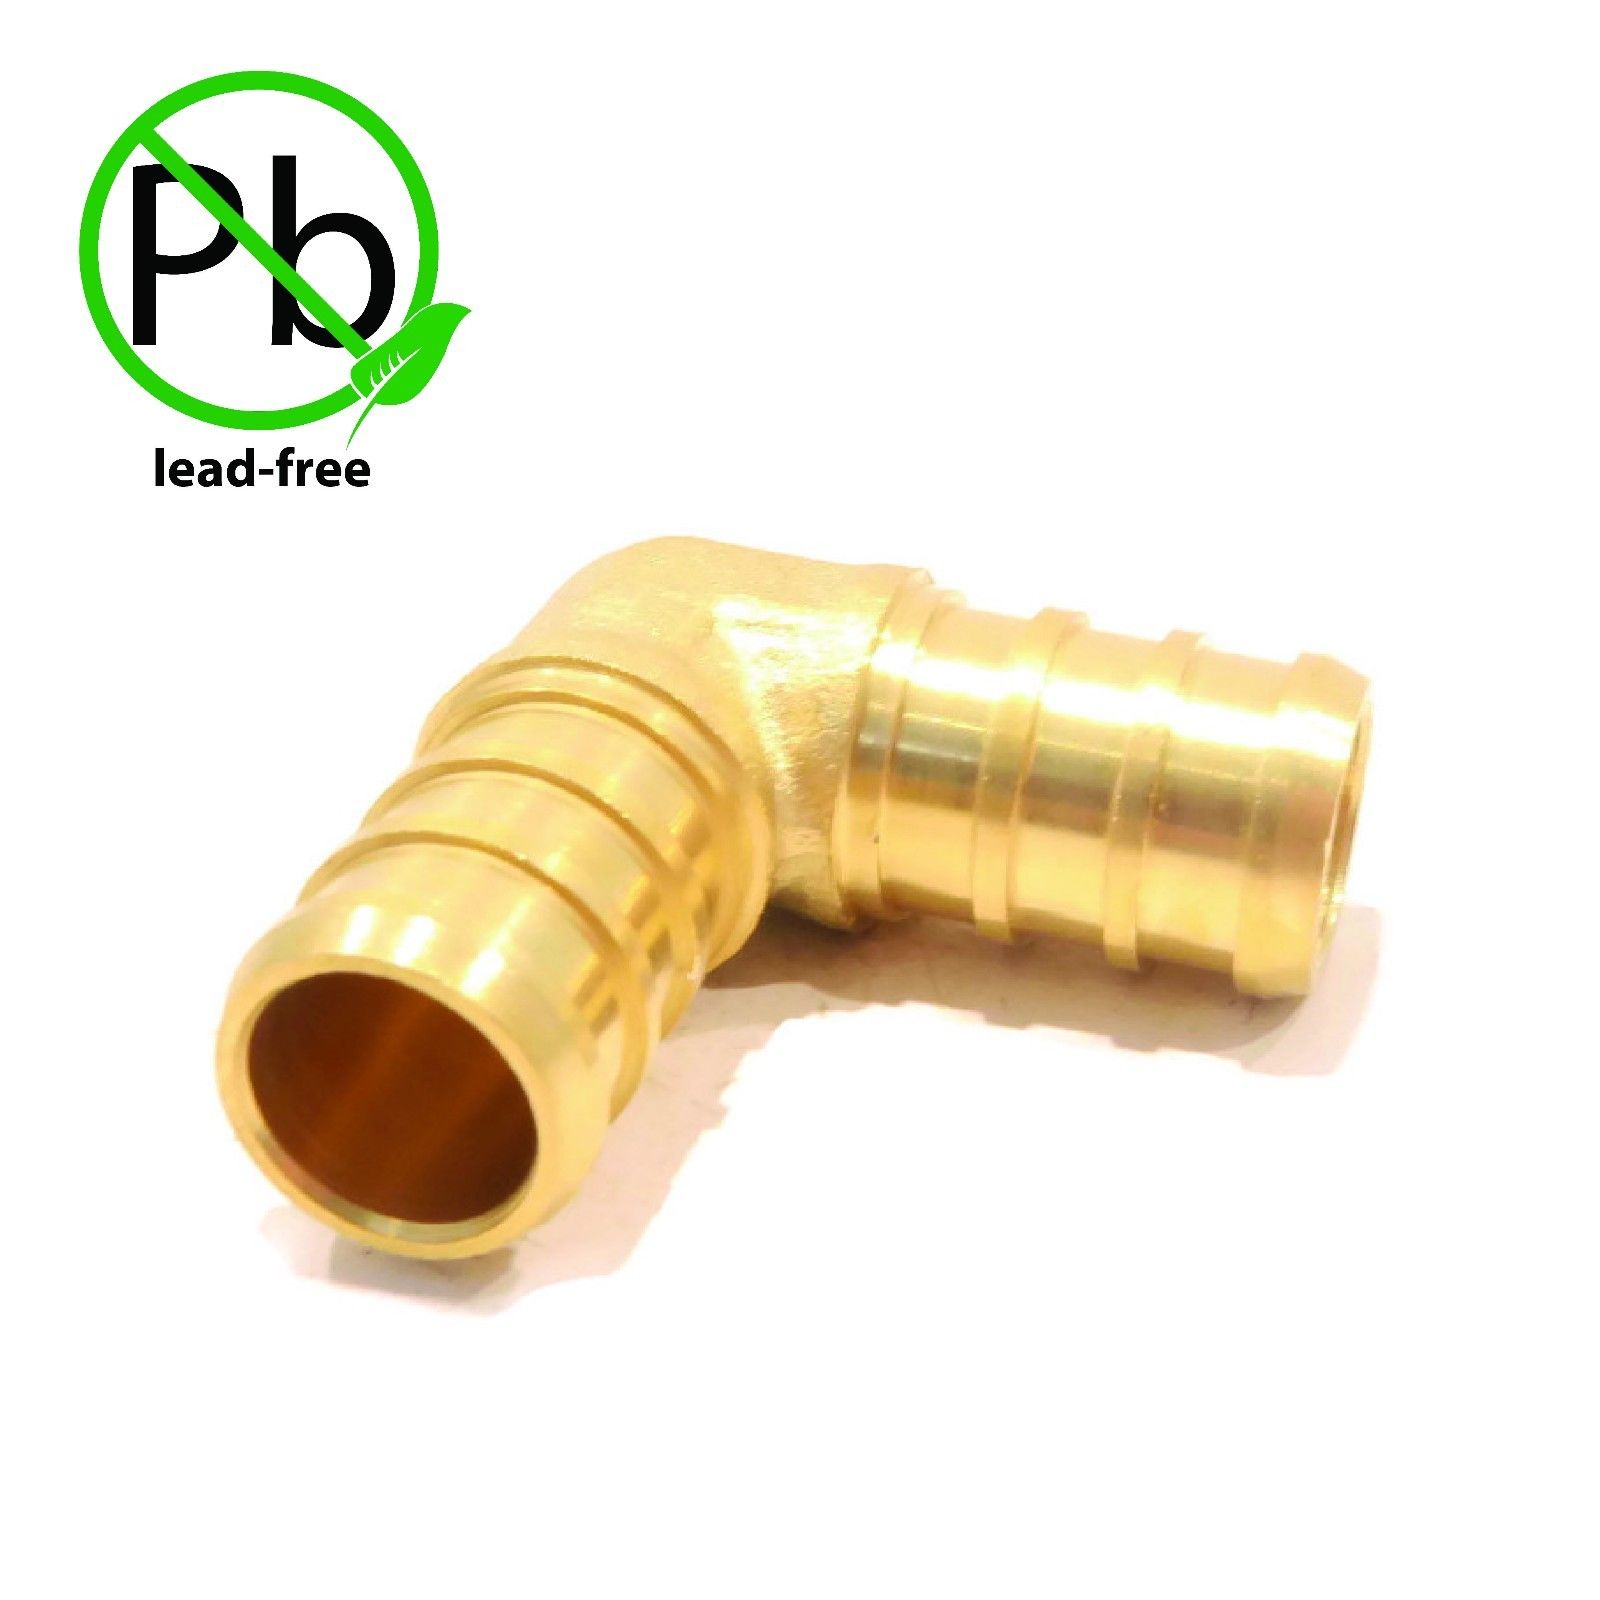 "1/2"" x 1/2"" PEX 90° BRASS LEAD FREE ELBOW Fitting replaces Watts LFWP19B-08PB by The ROP Shop"